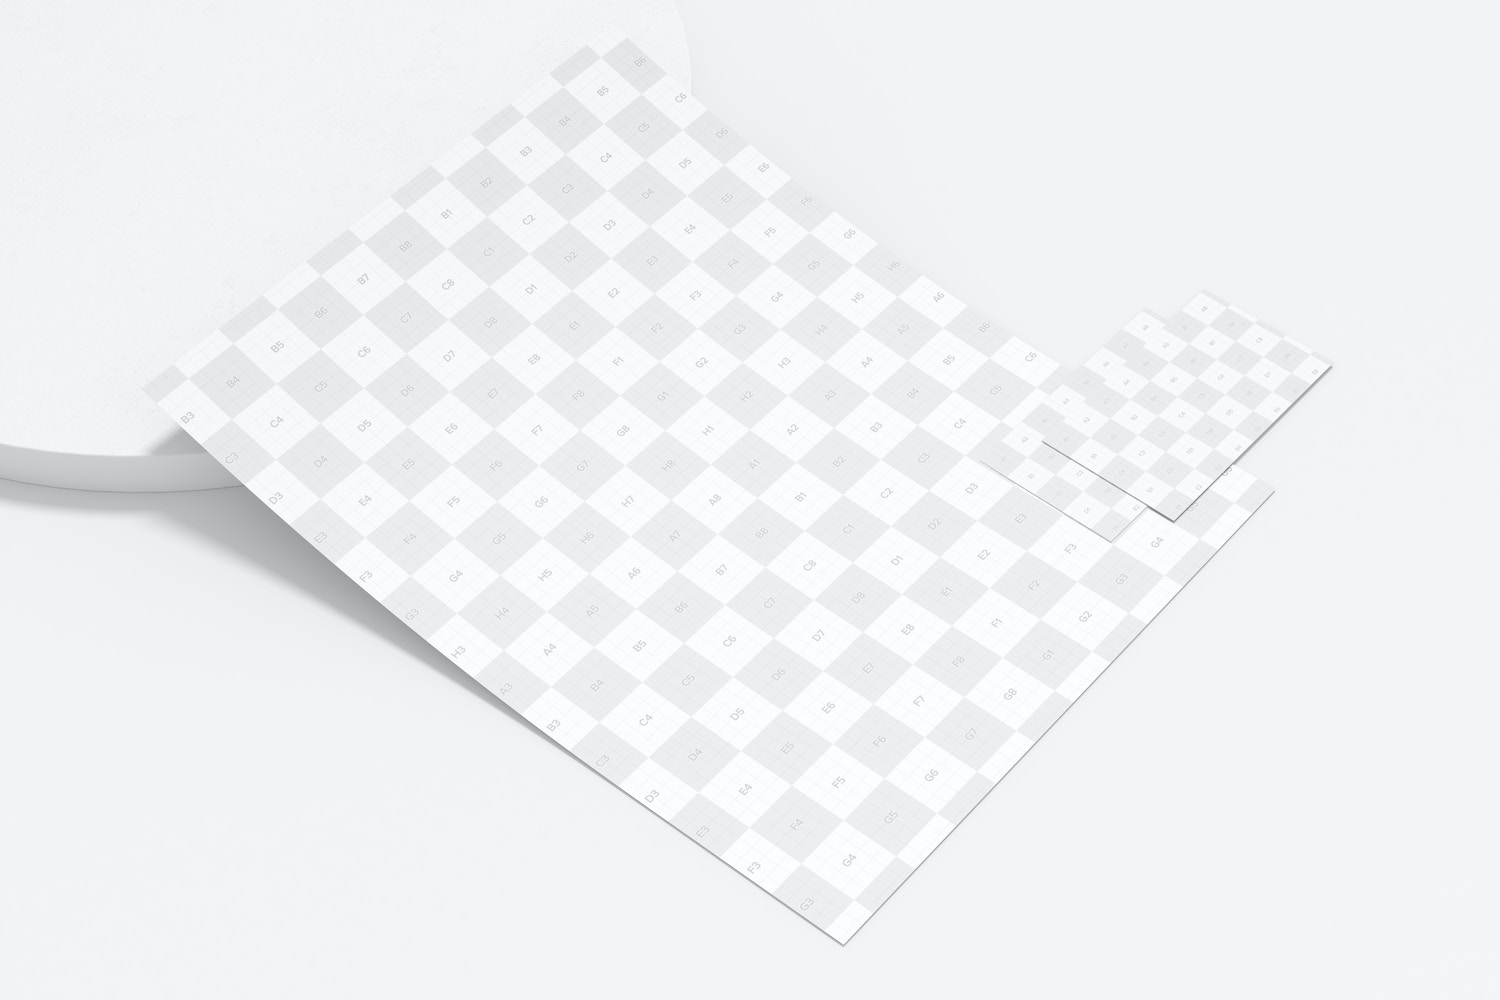 Letterhead with Business Card Mockup, Left View